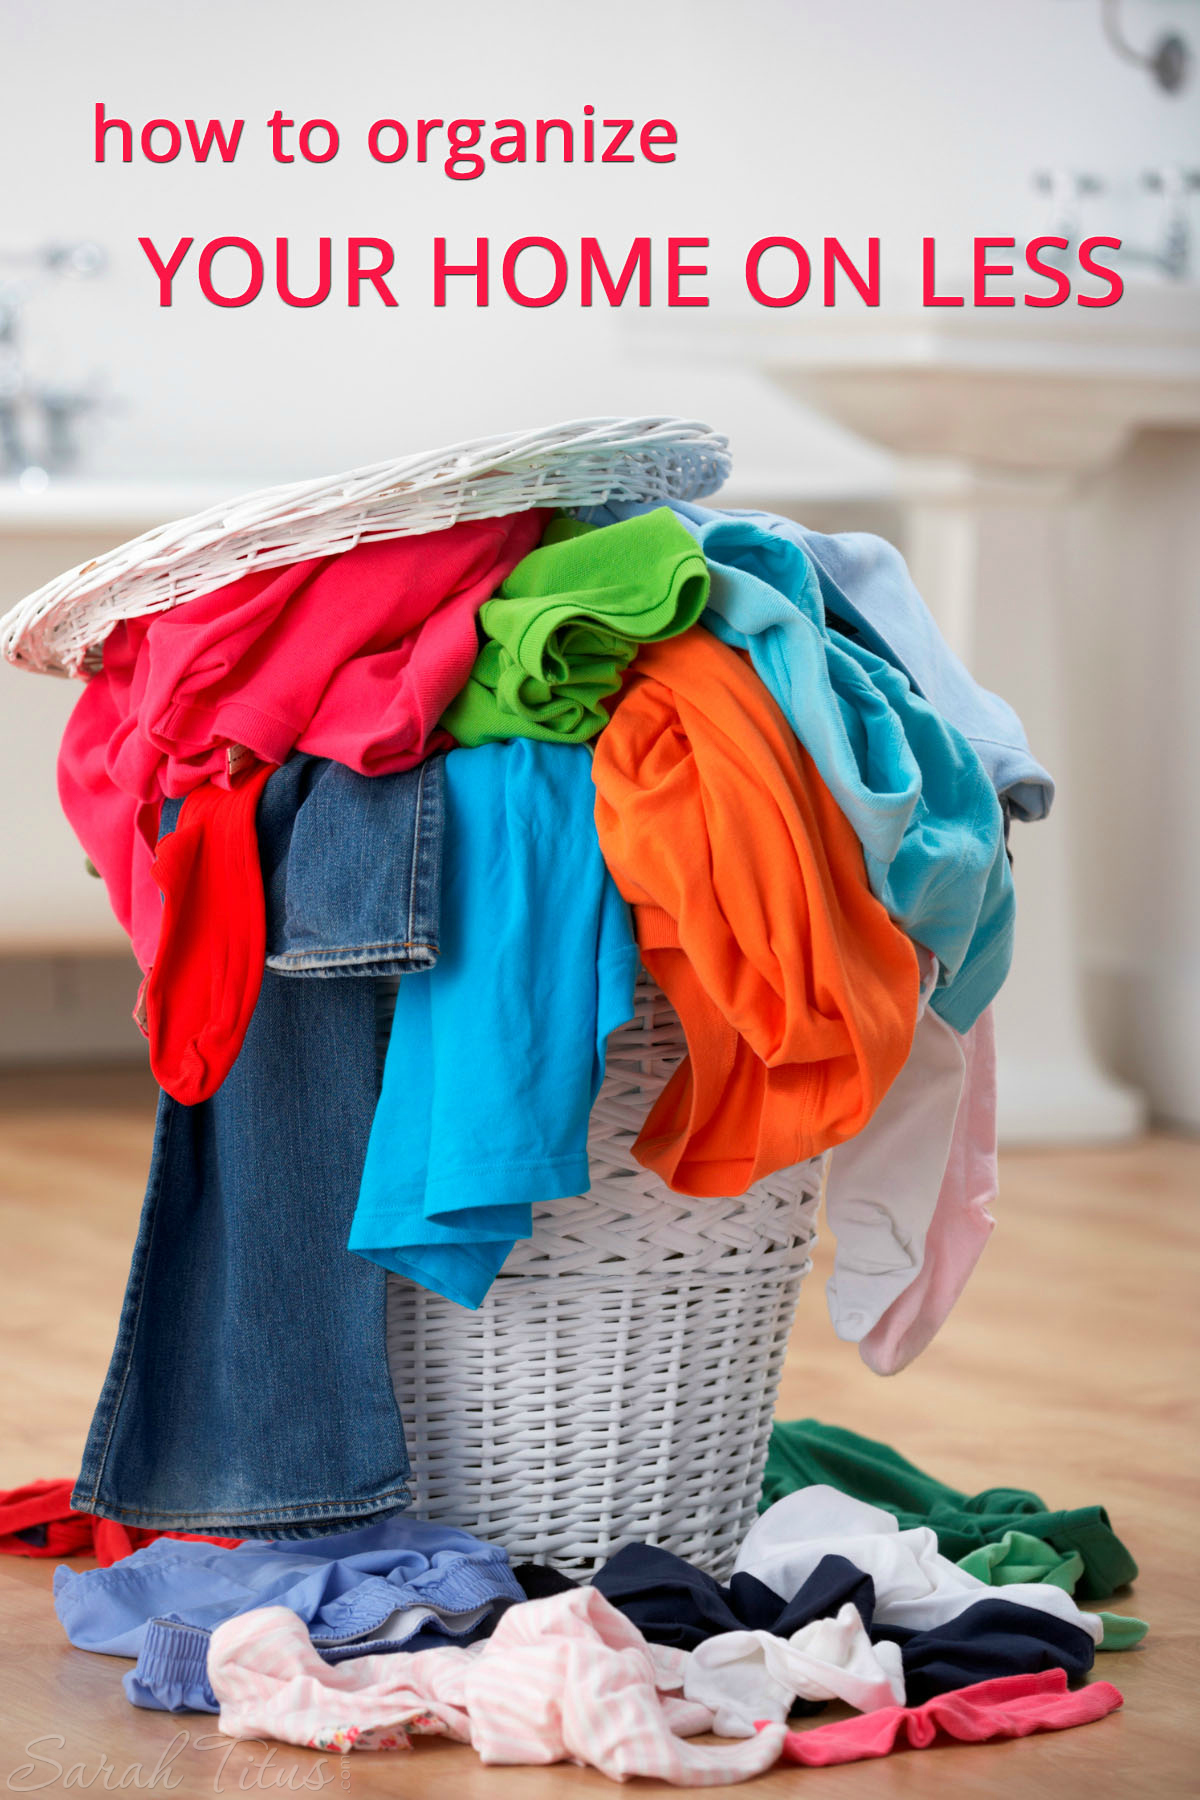 How to Organize Your Home on Less